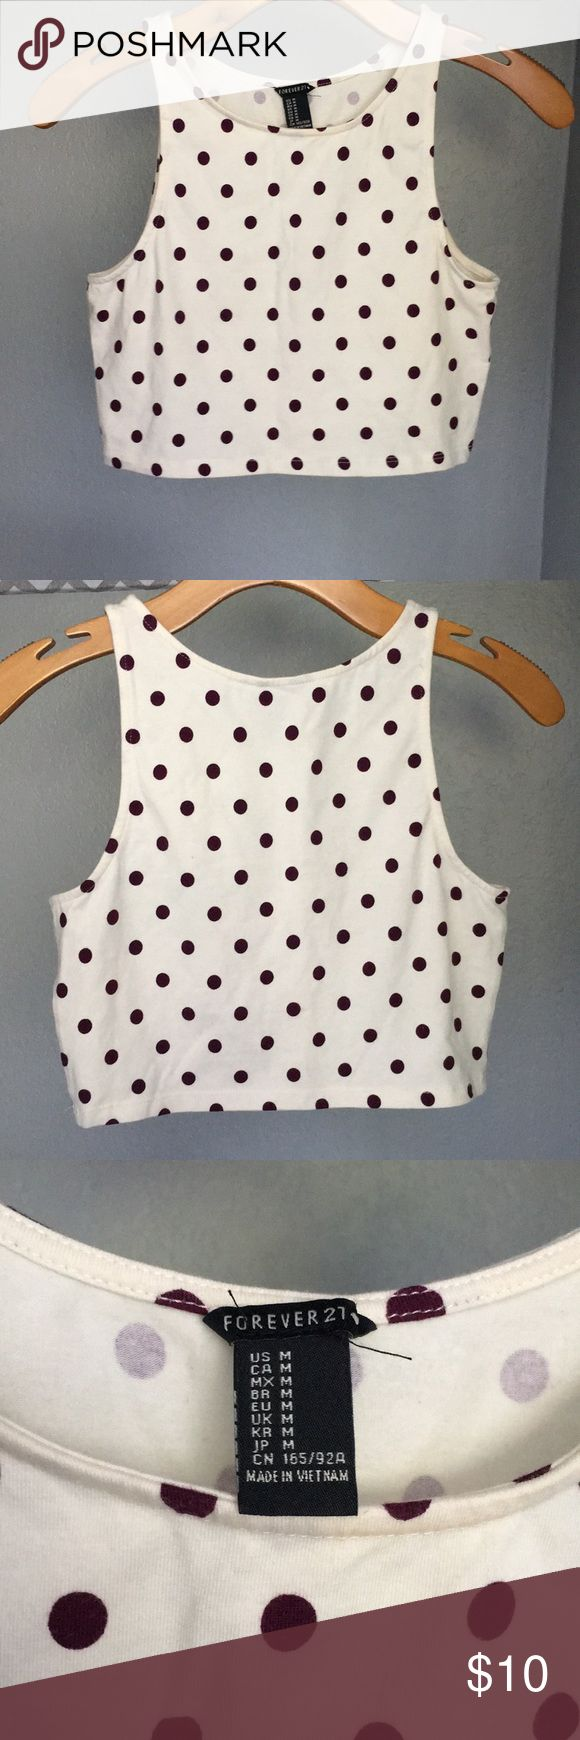 Cream and burgundy polka dot crop top Cream and burgundy polka dot crop top from Forever 21. Runs small that's why I got a size M. In good condition. Forever 21 Tops Crop Tops